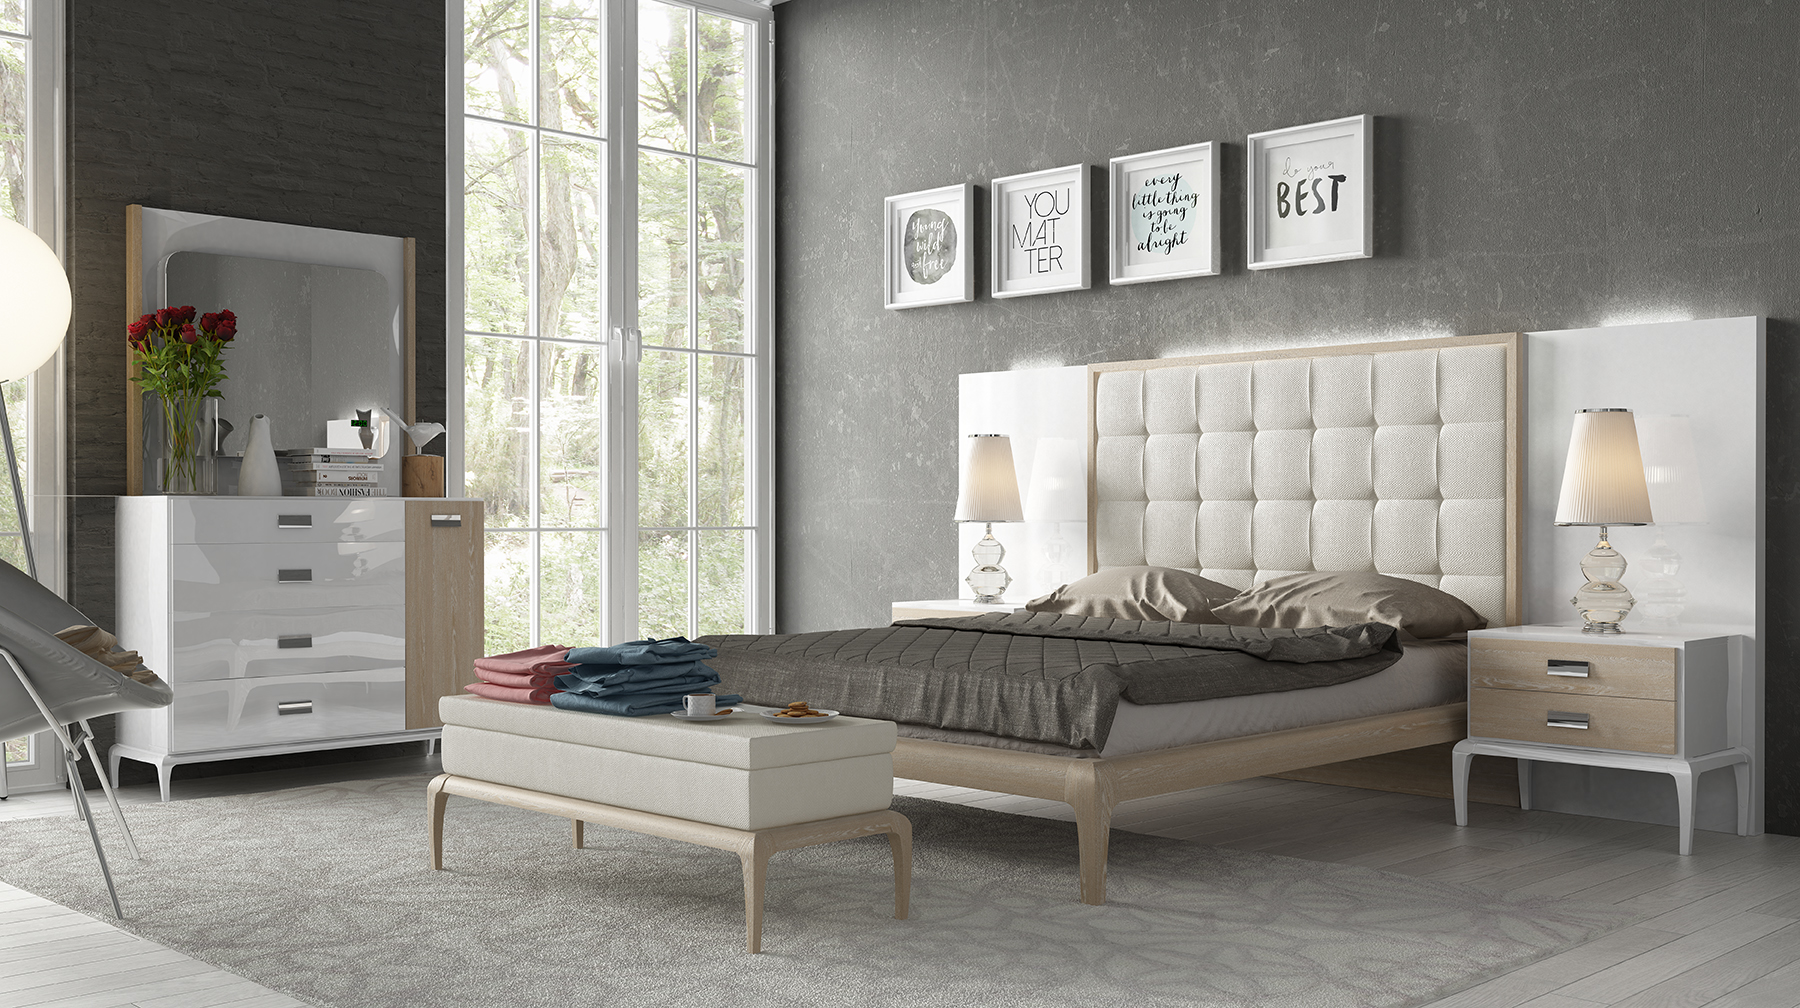 Stylish Wood High End Bedroom Furniture with Extra Storage